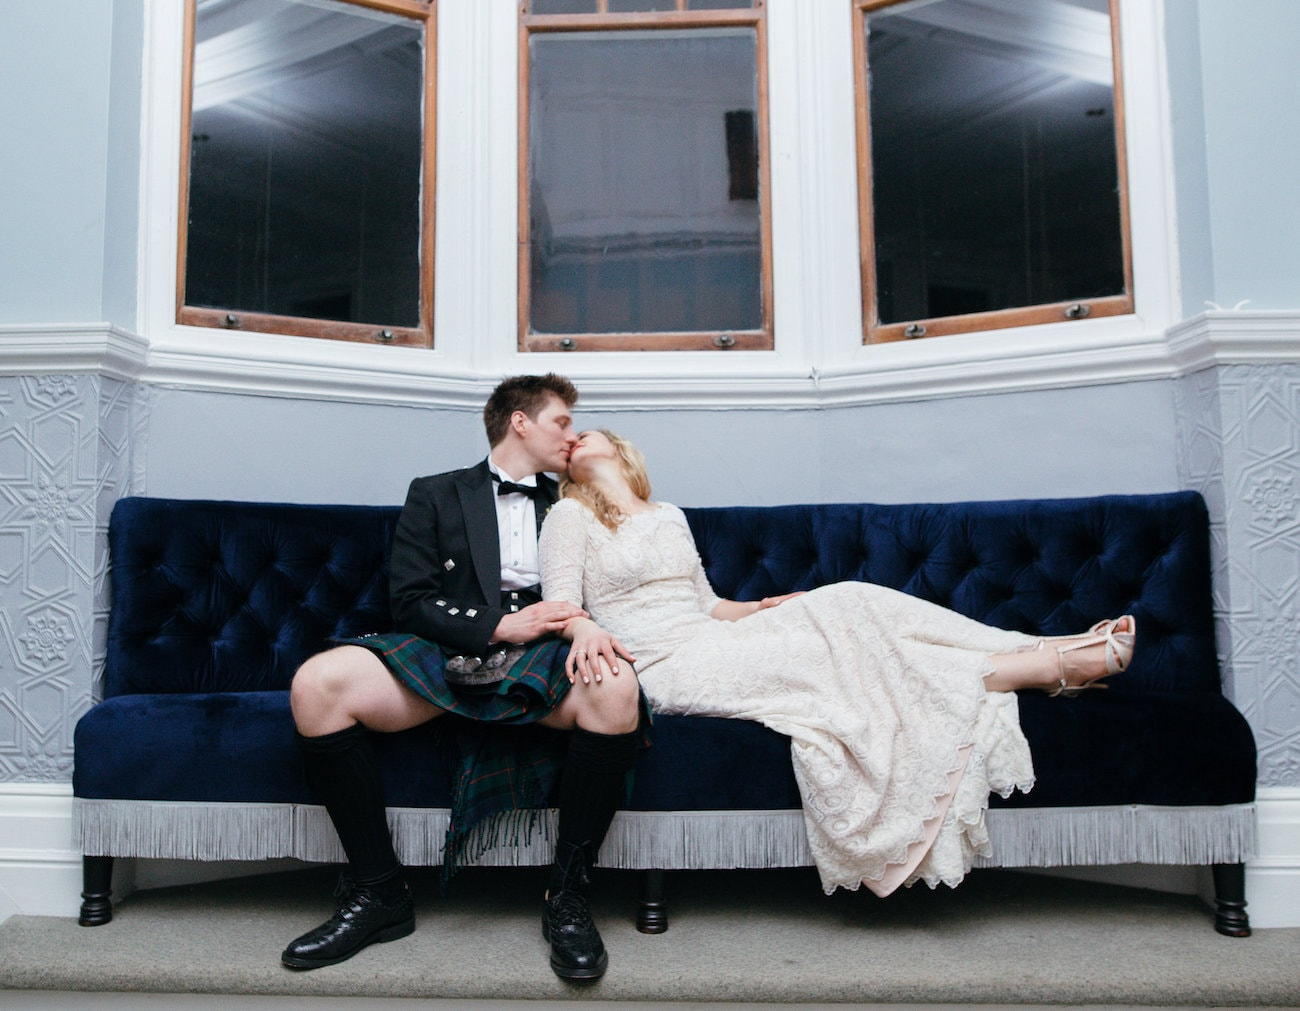 Vintage Chic City Wedding at the Cape Town Club   Credit: Duane Smith